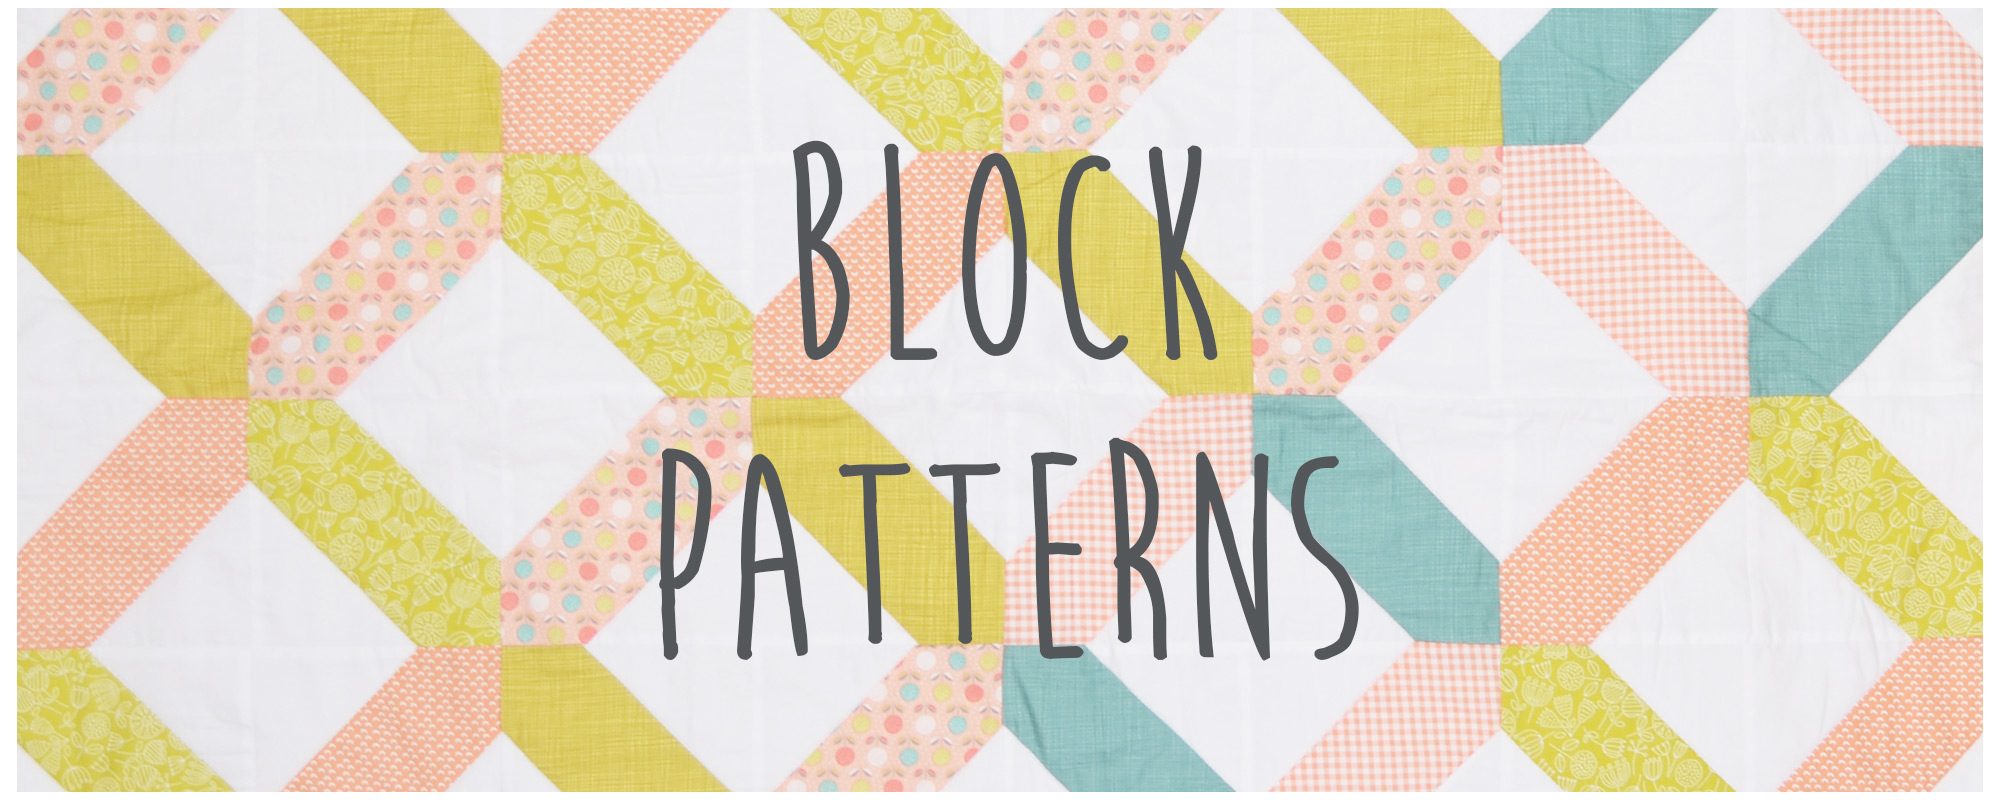 Block Patterns